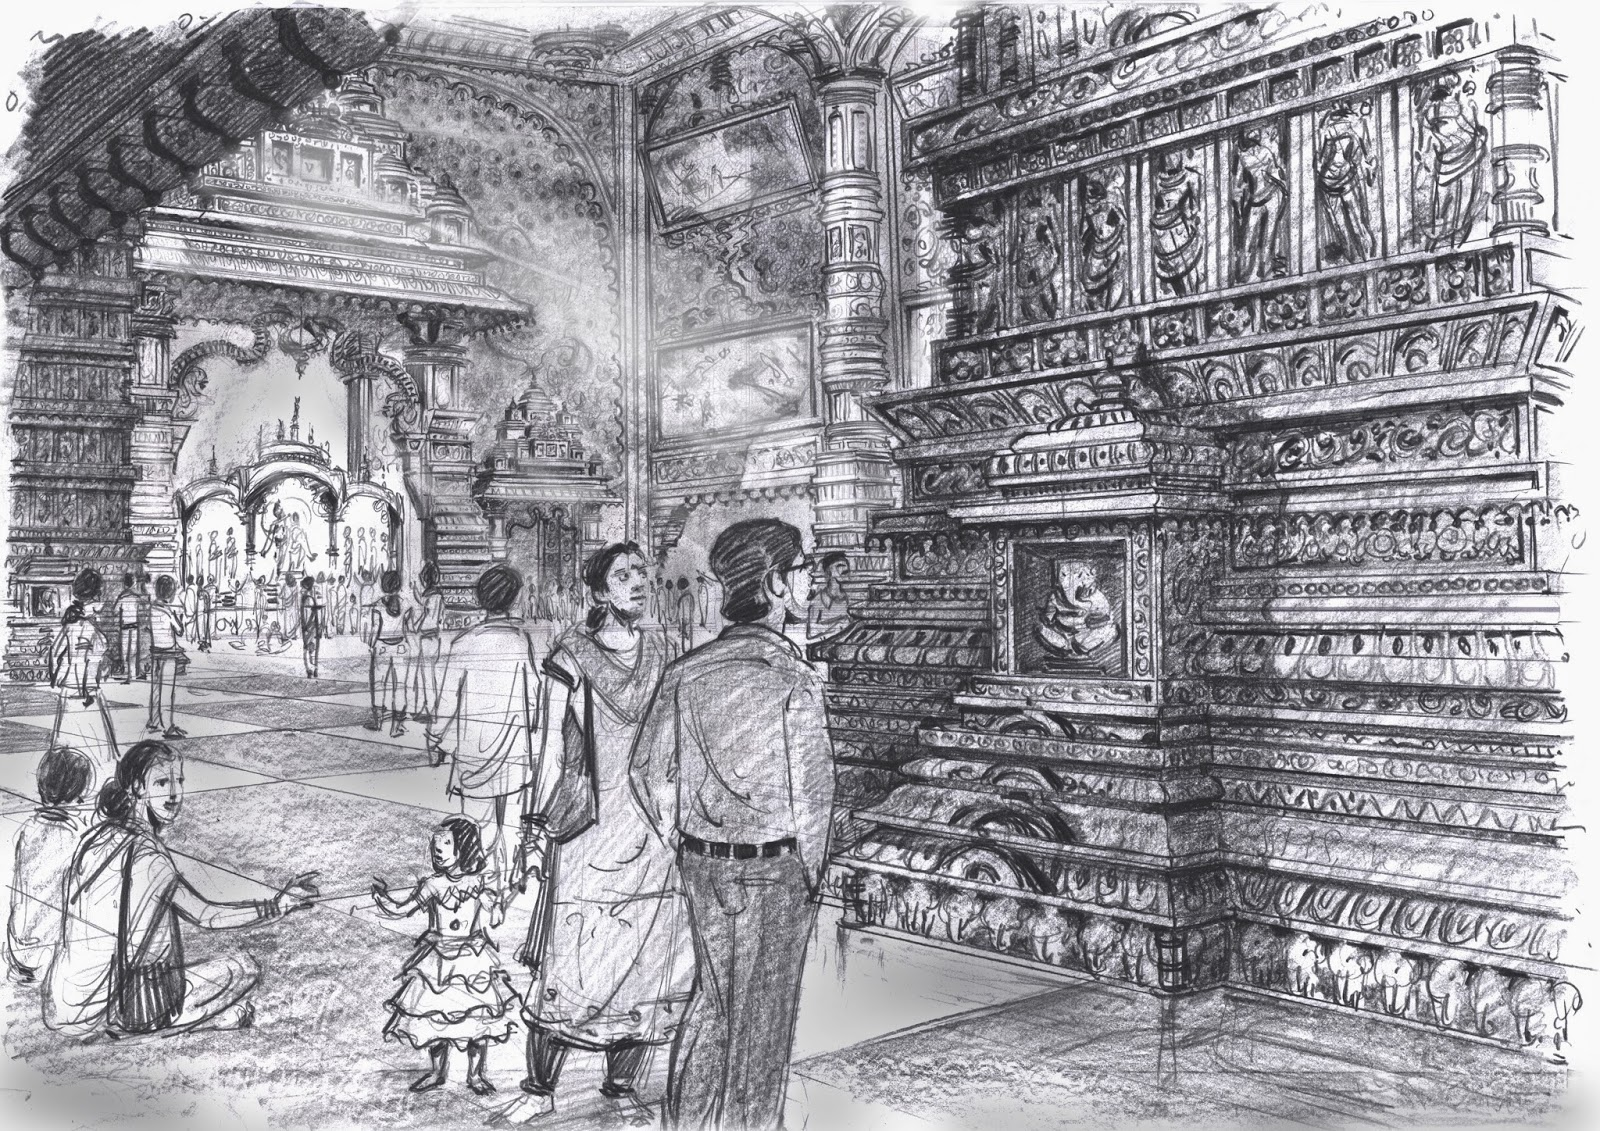 Pencil drawings for krishna theme park iskcon character and concept 2007 8